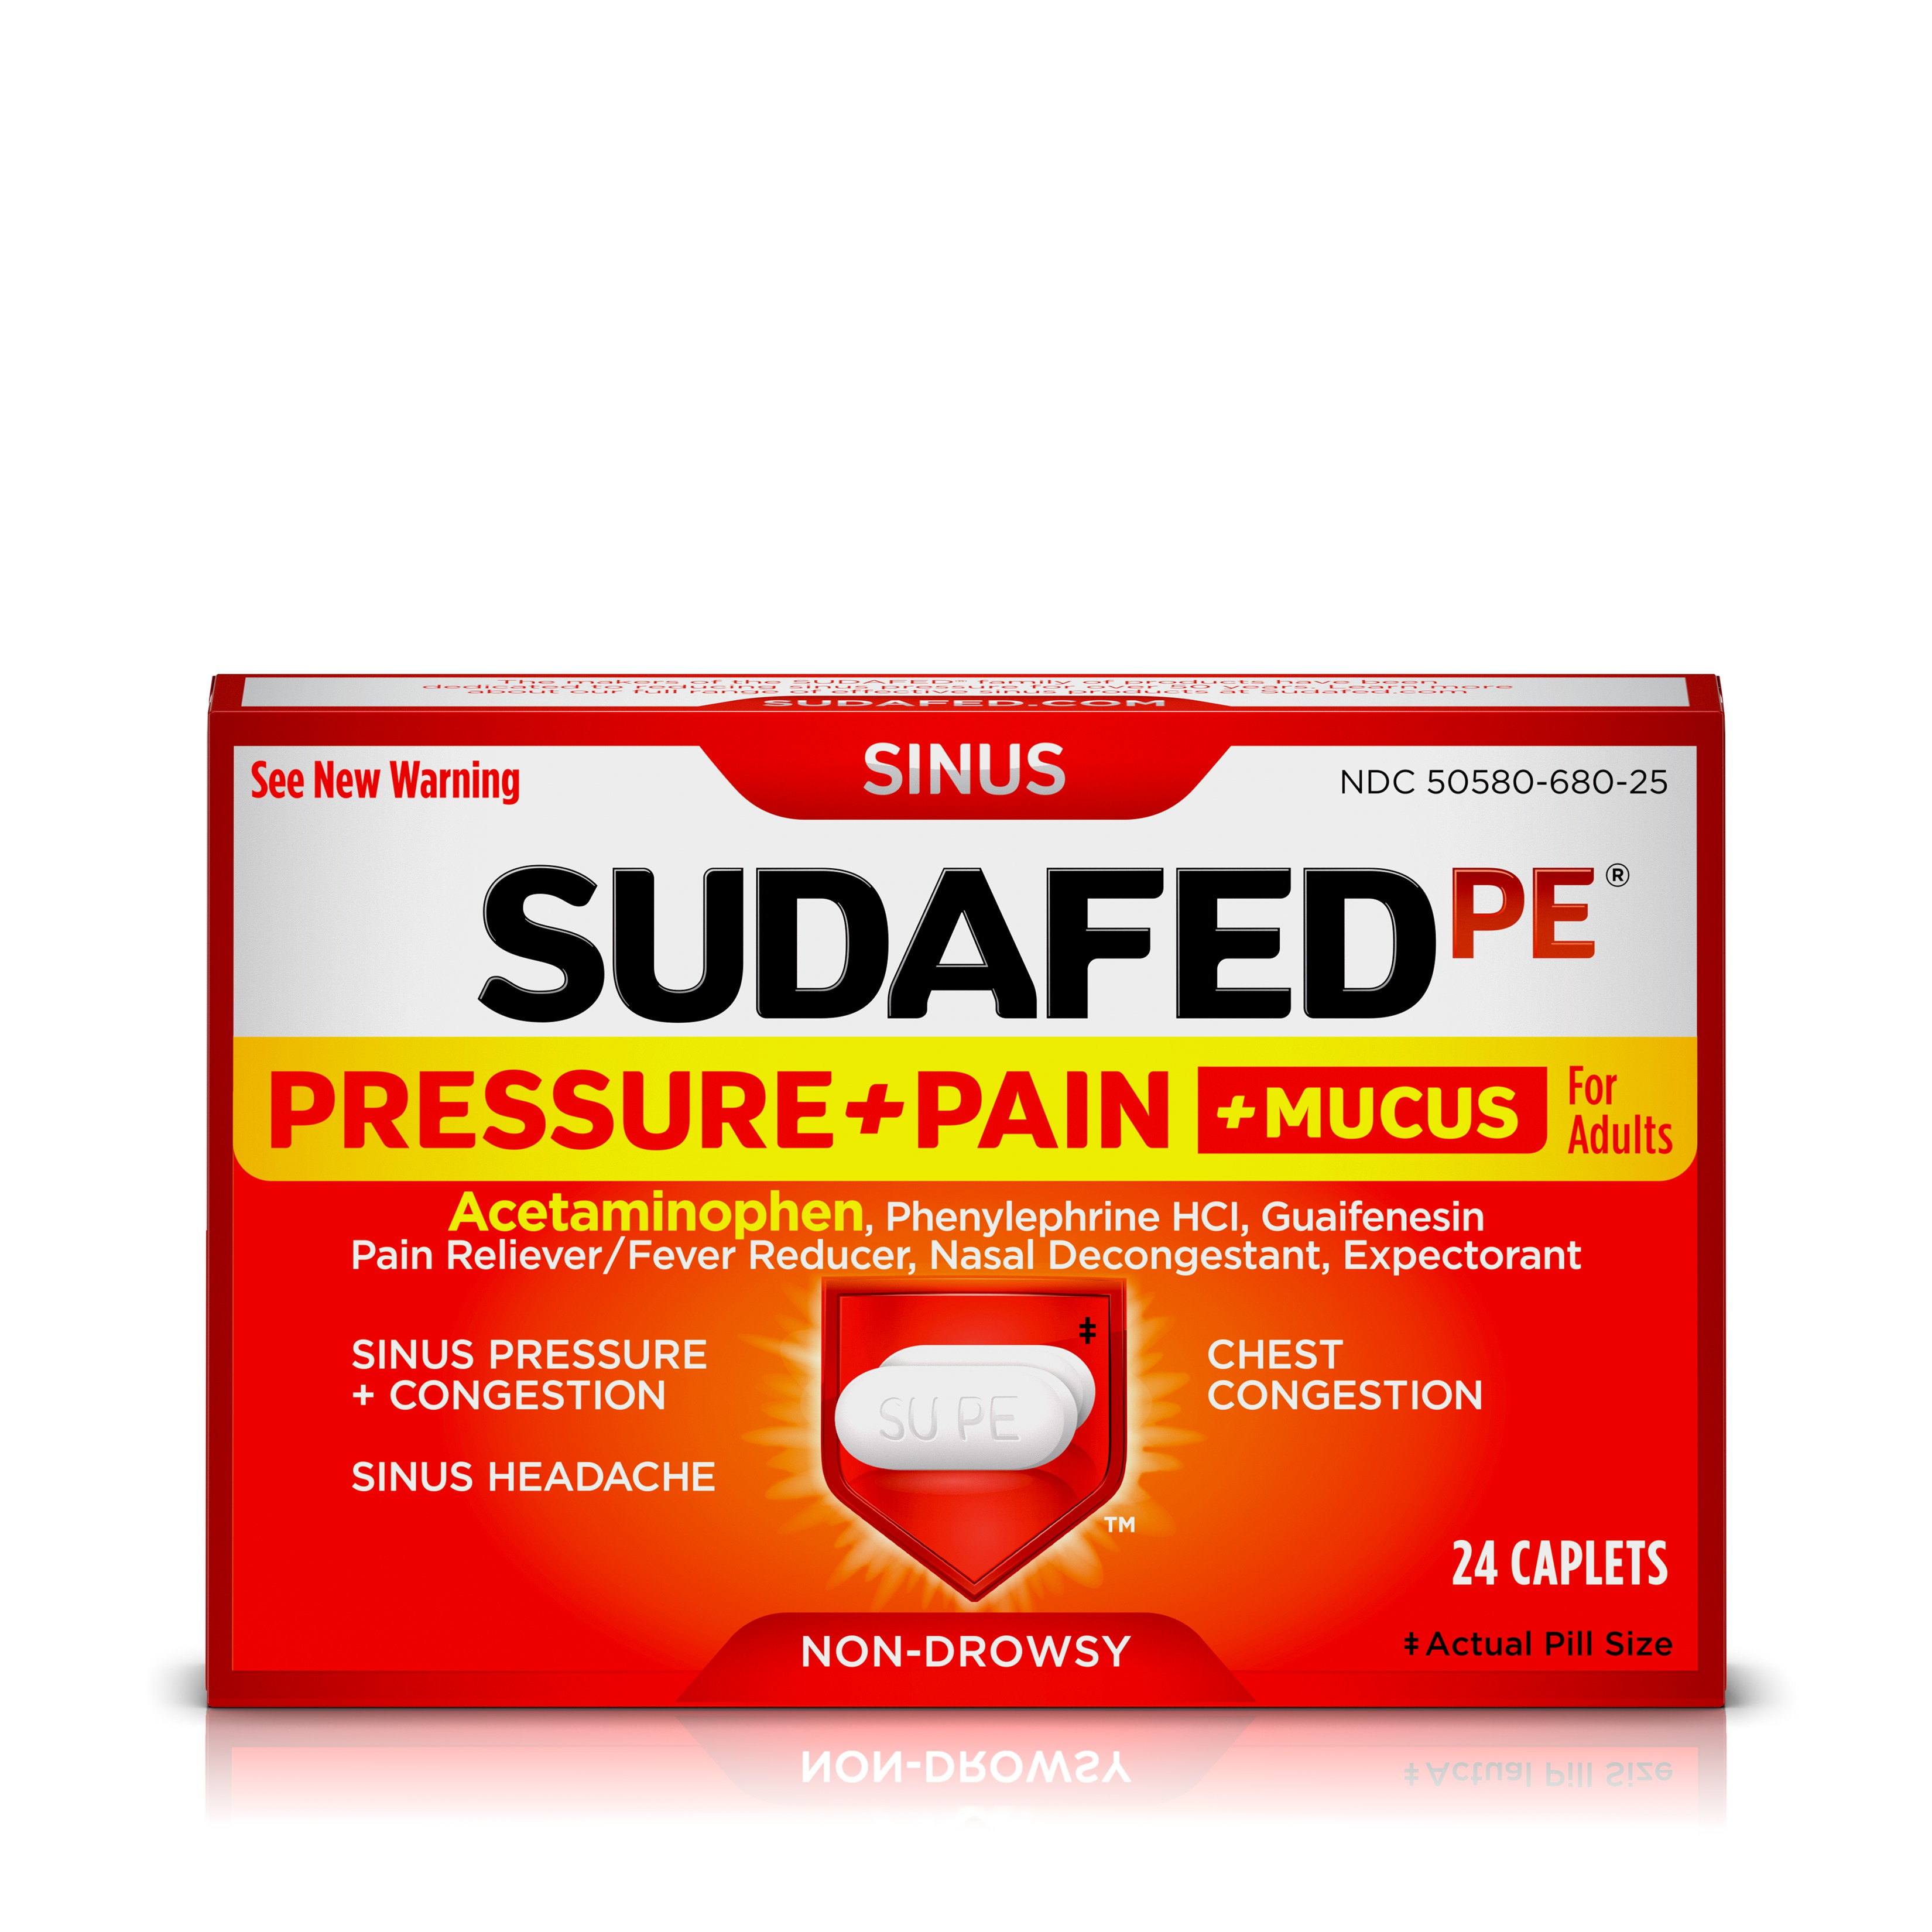 Sudafed PE Sinus Pressure + Pain + Mucus and Congestion Relief, 24 ct